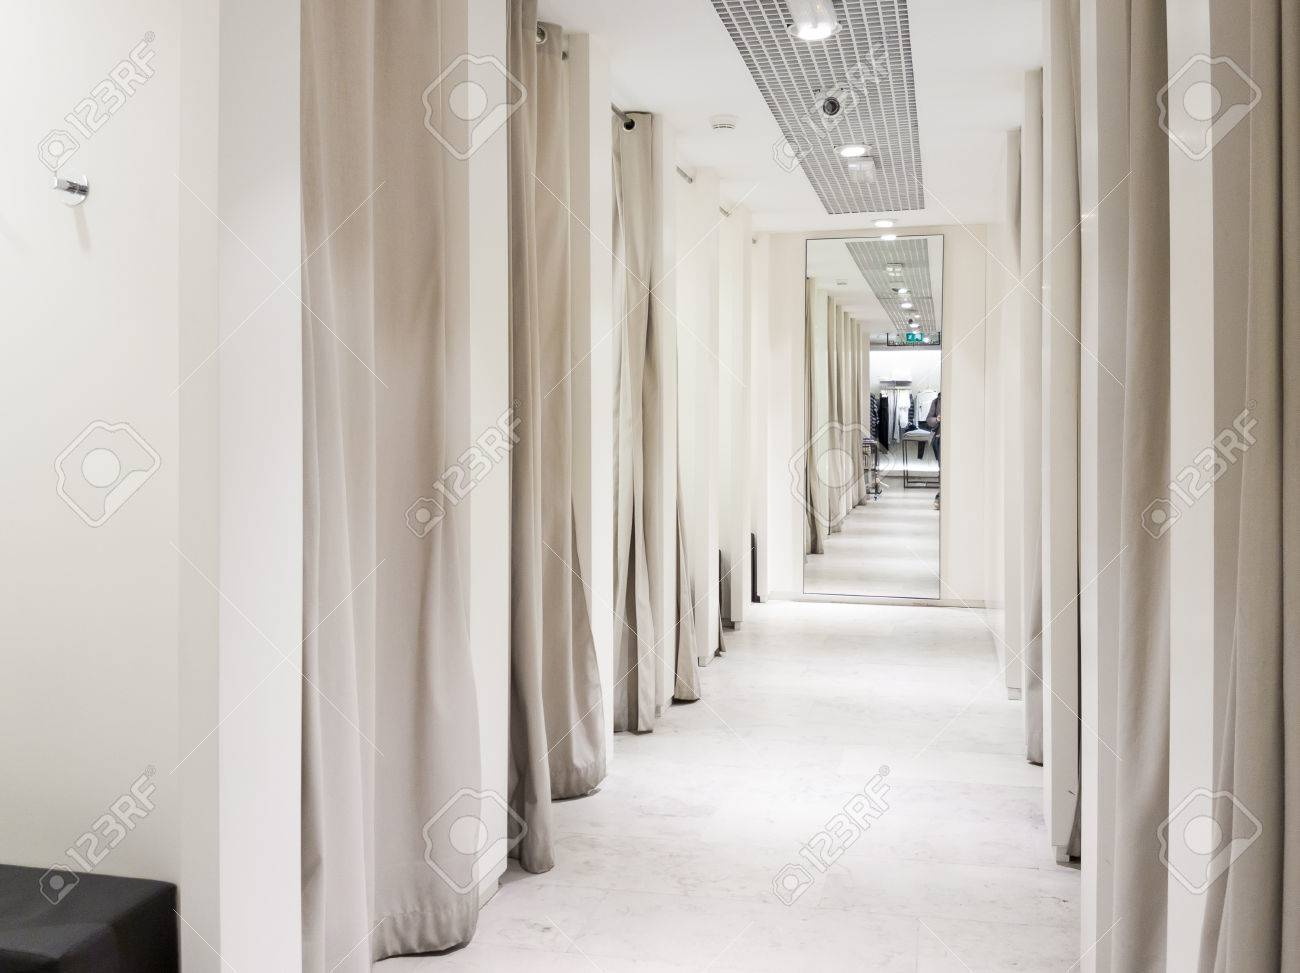 Fitting room interior in a mall. Nobody - 68348767